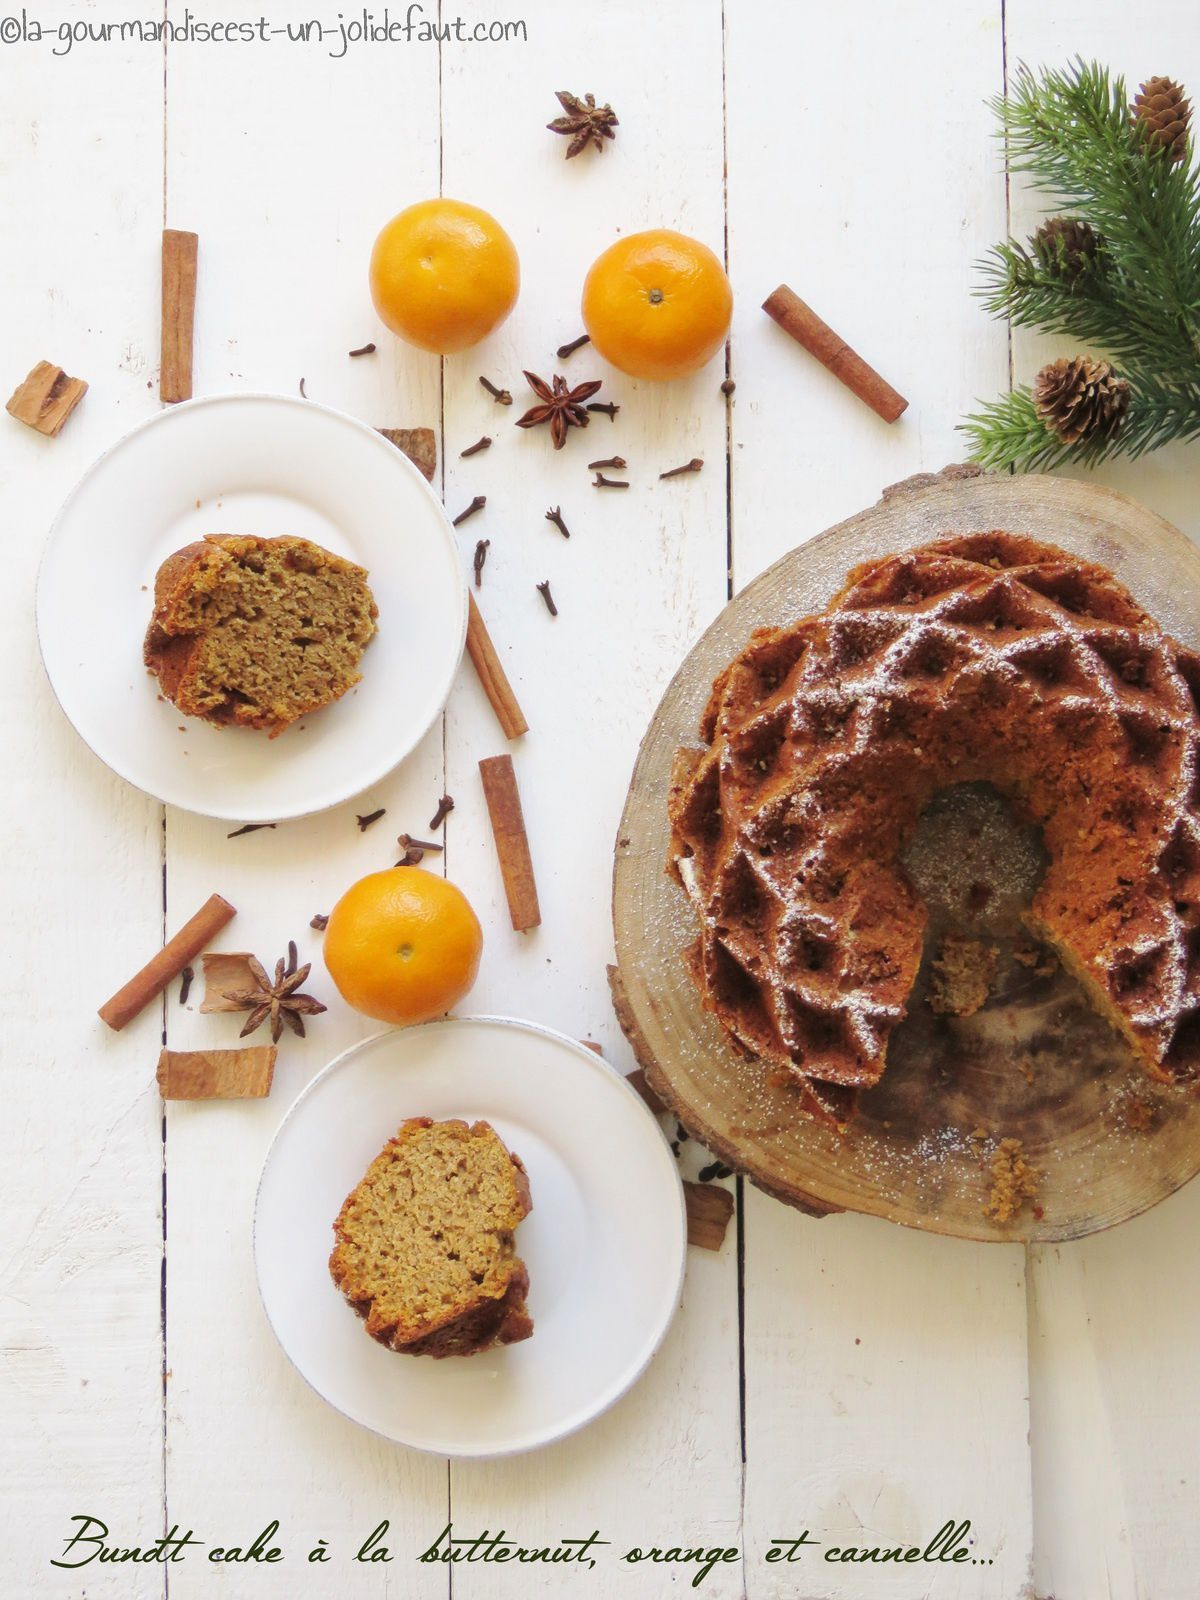 Bundt cake à la butternut, orange et cannelle